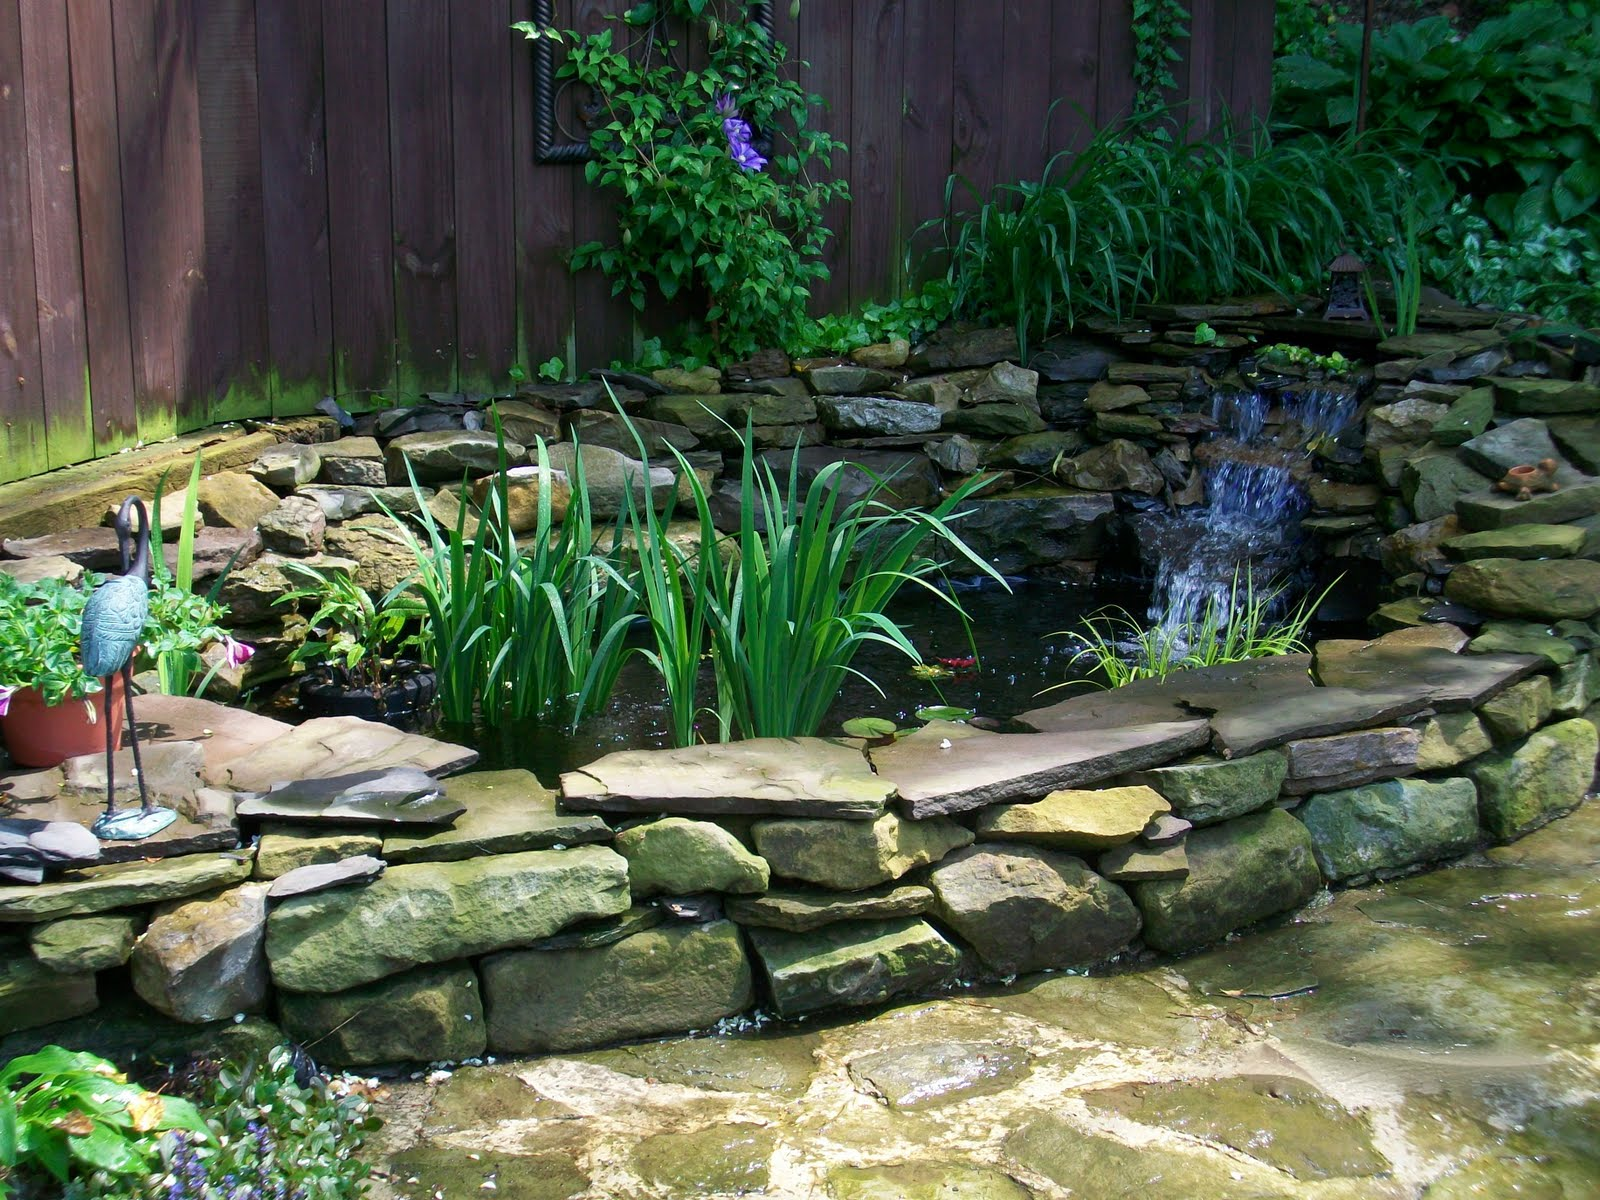 Building a backyard pond using a pond kit.